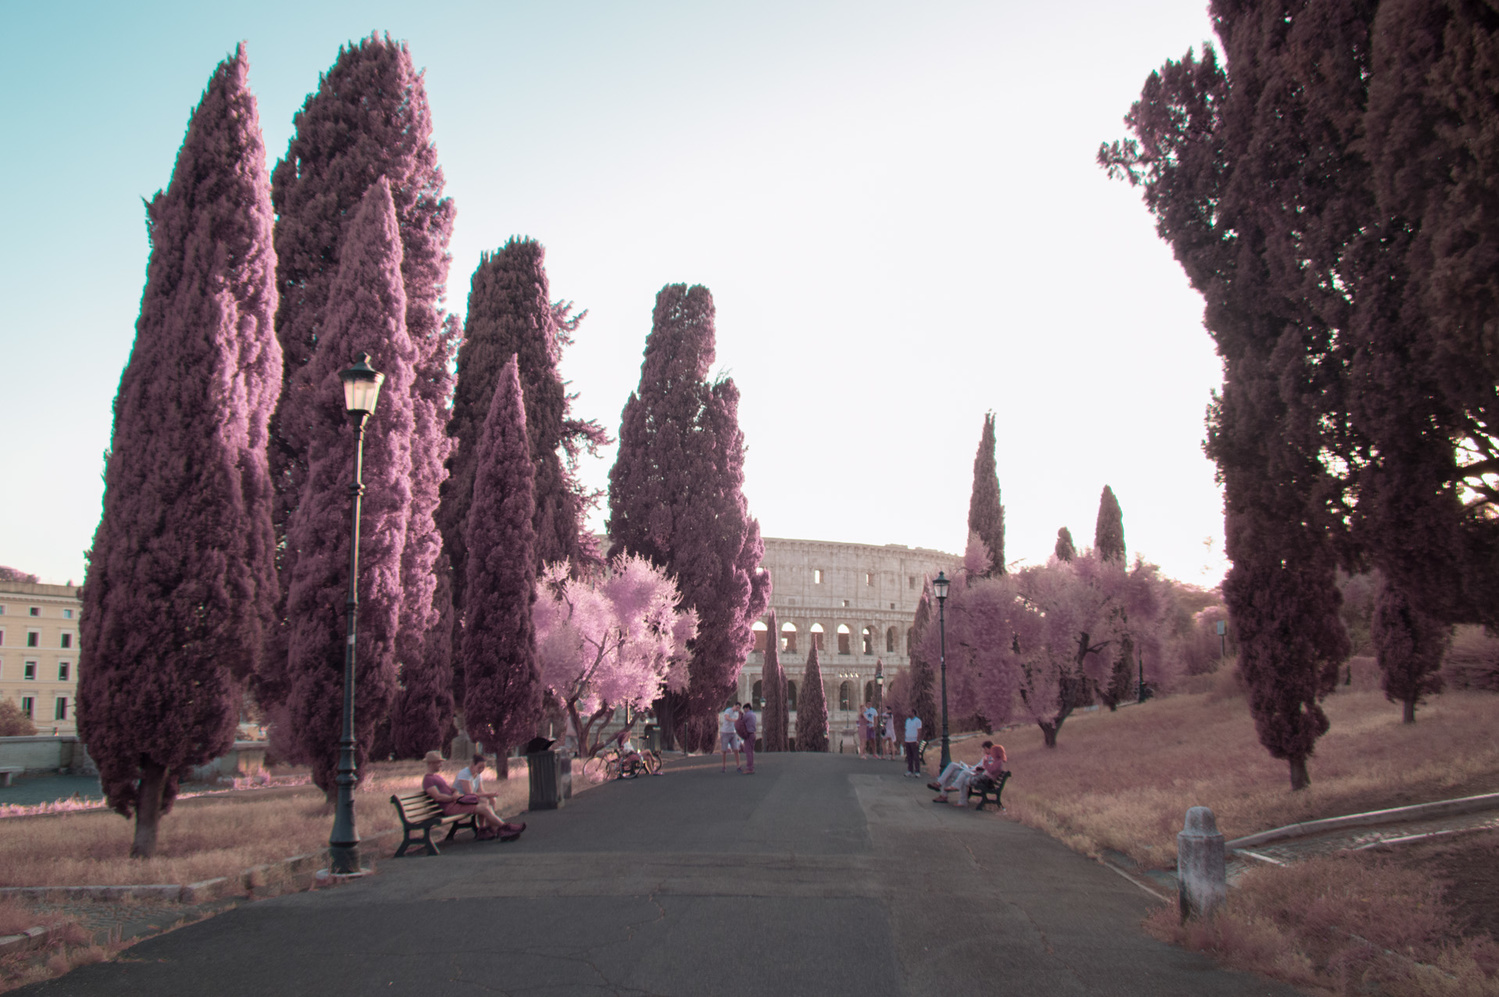 Cypress trees near the Colosseum in Rome